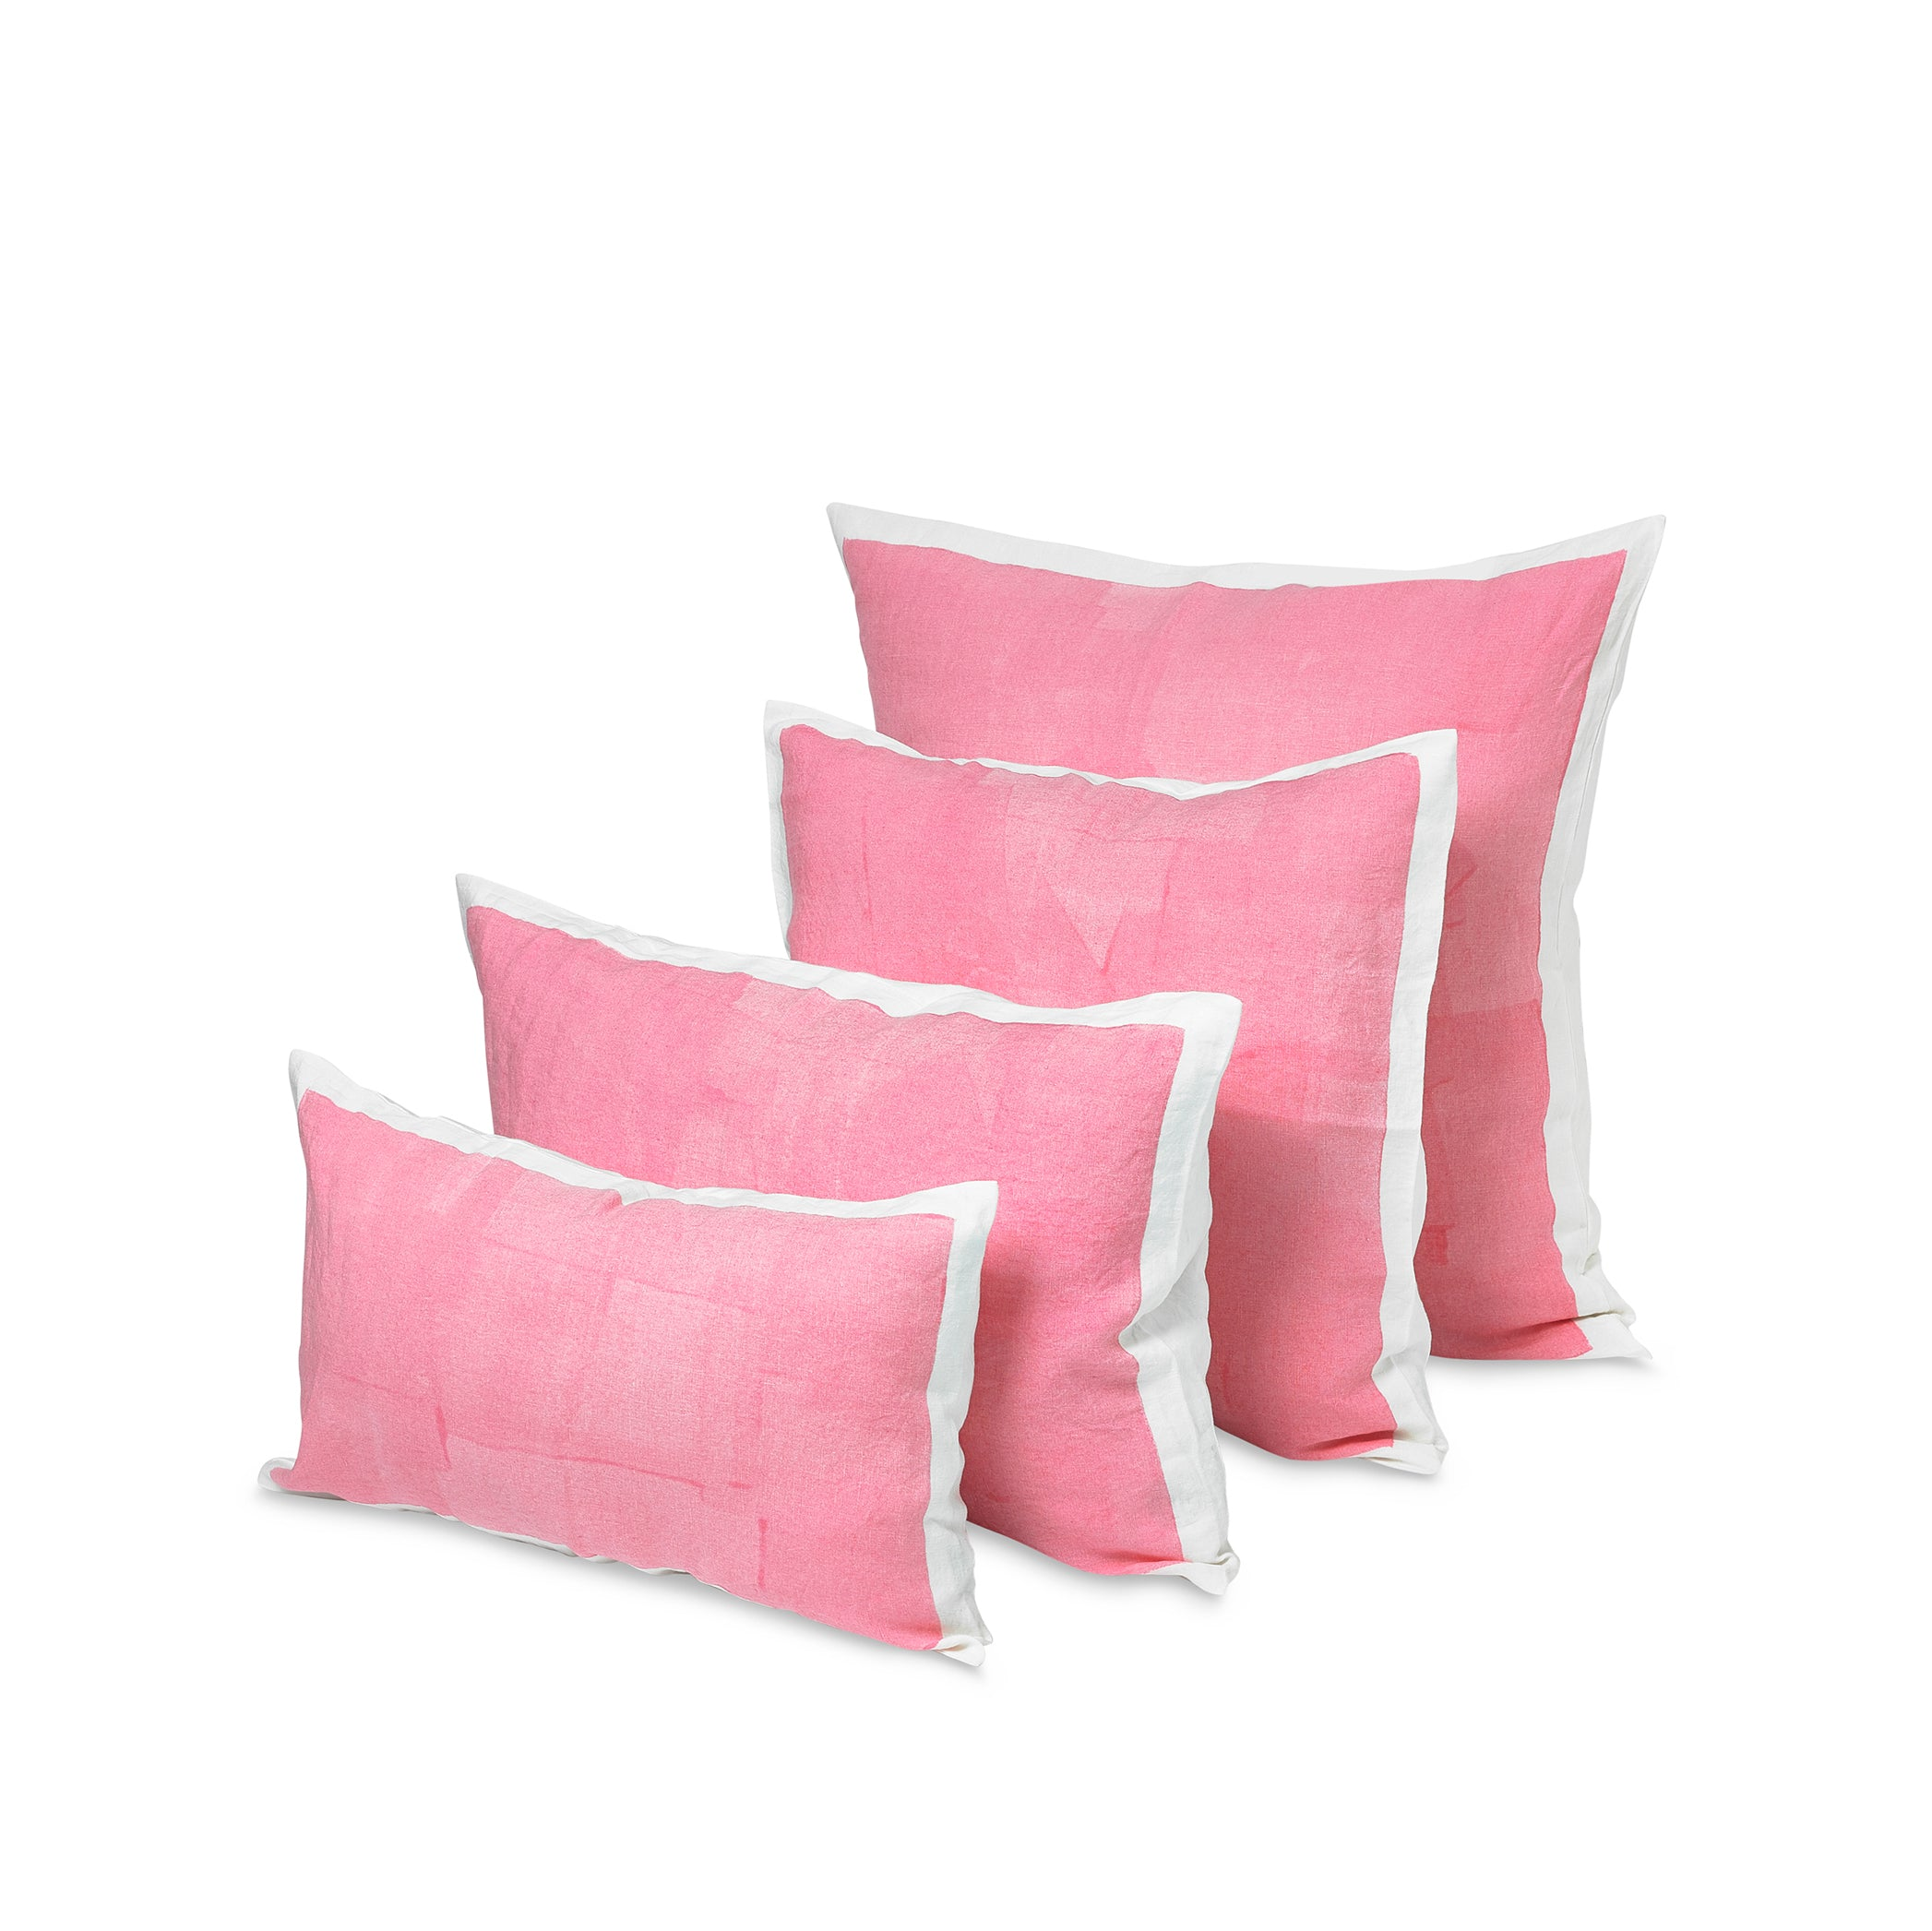 Hand Painted Linen Cushion Cover in Rose Pink, 50cm x 50cm